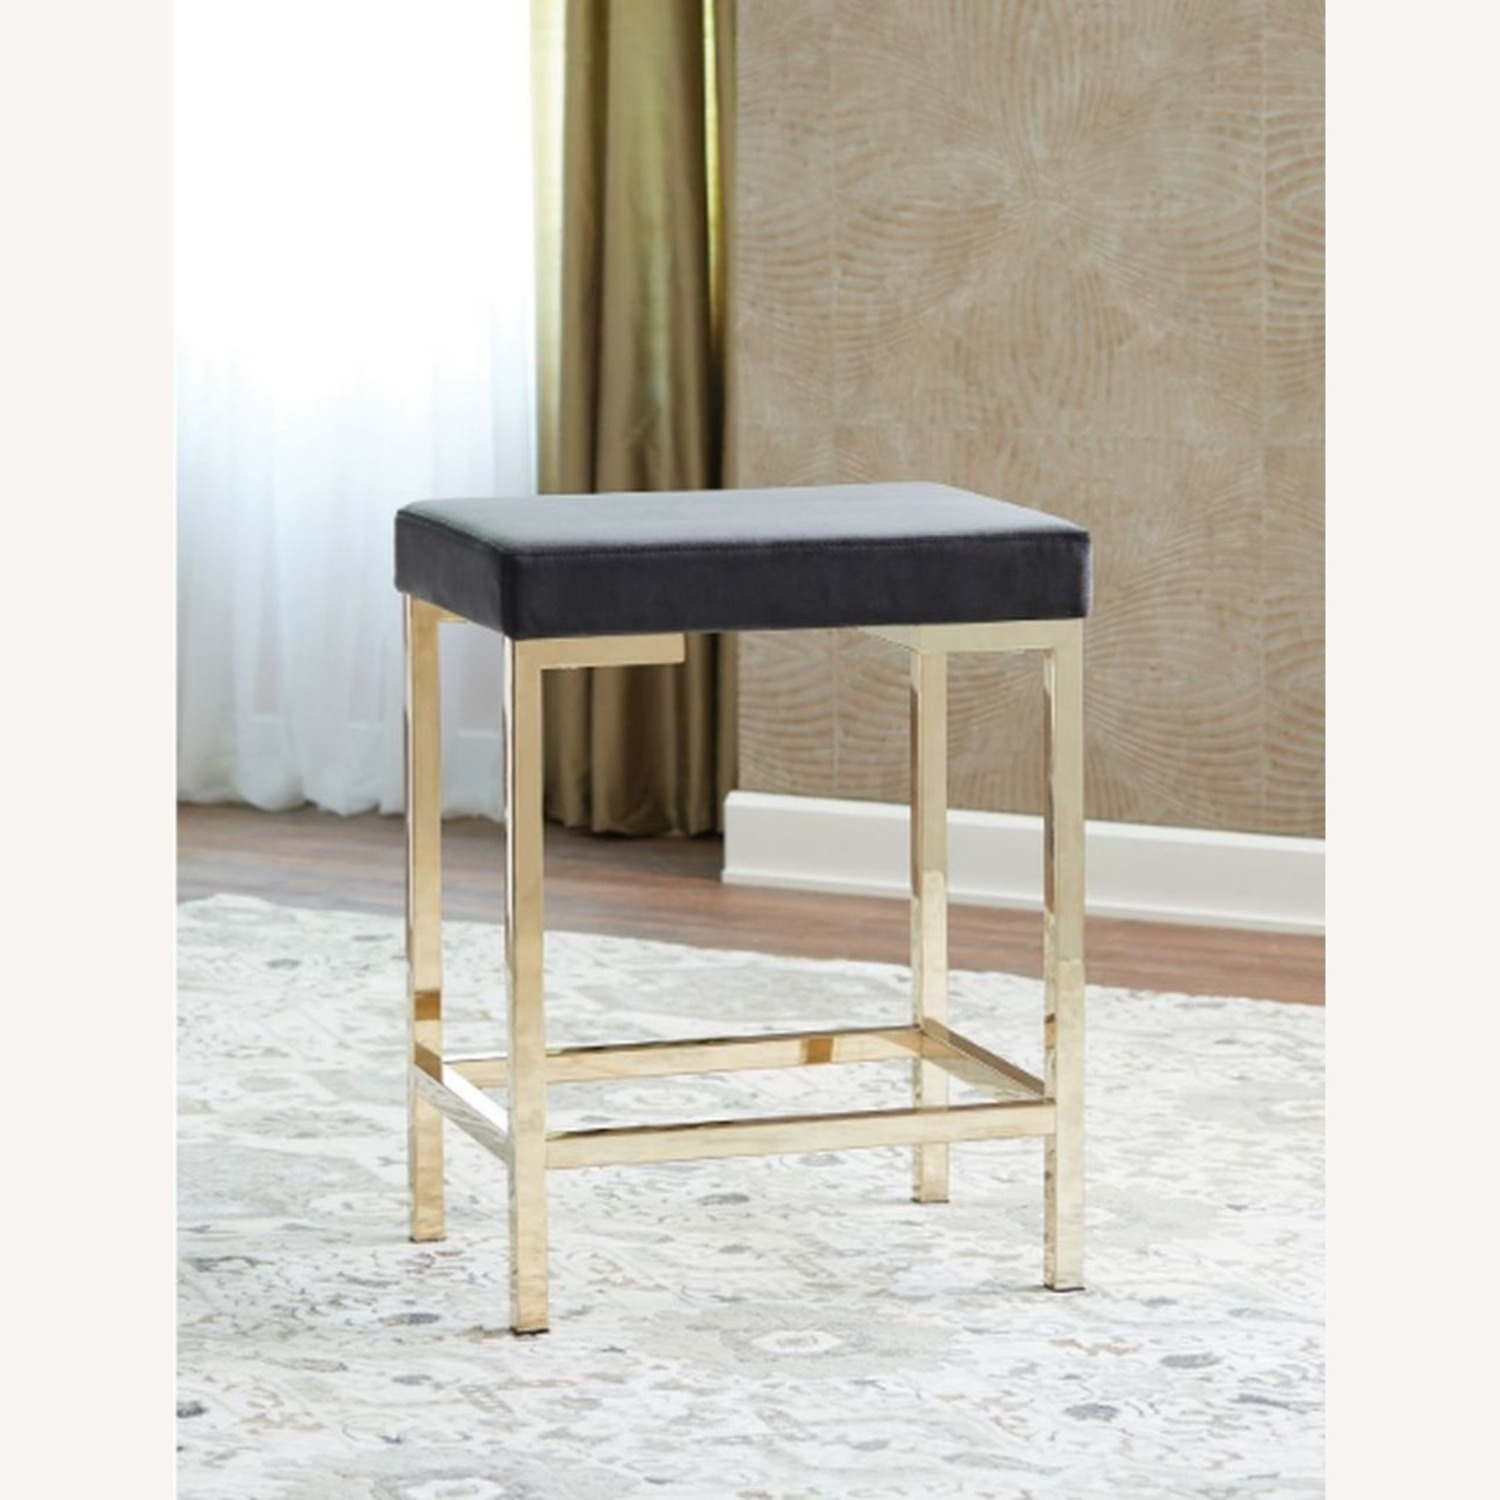 Minimalist Counter Height Stool In Charcoal Grey - image-2